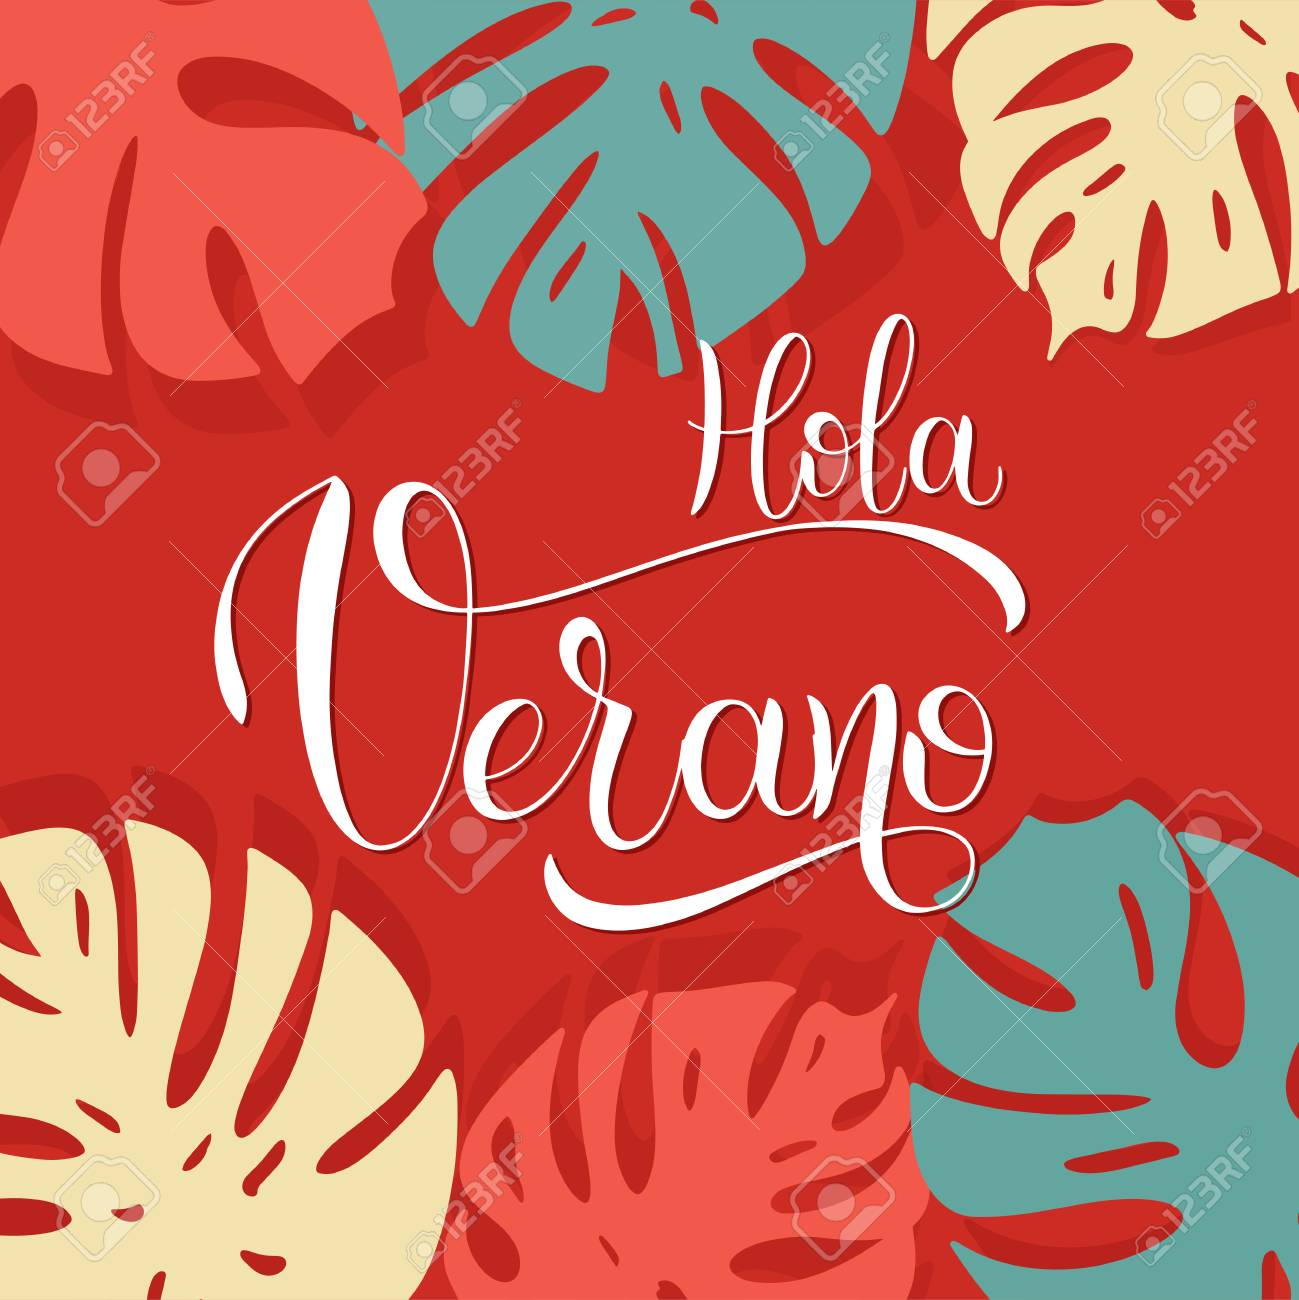 hight resolution of hola verano hello summer lettering on spanish elements for invitations posters greeting